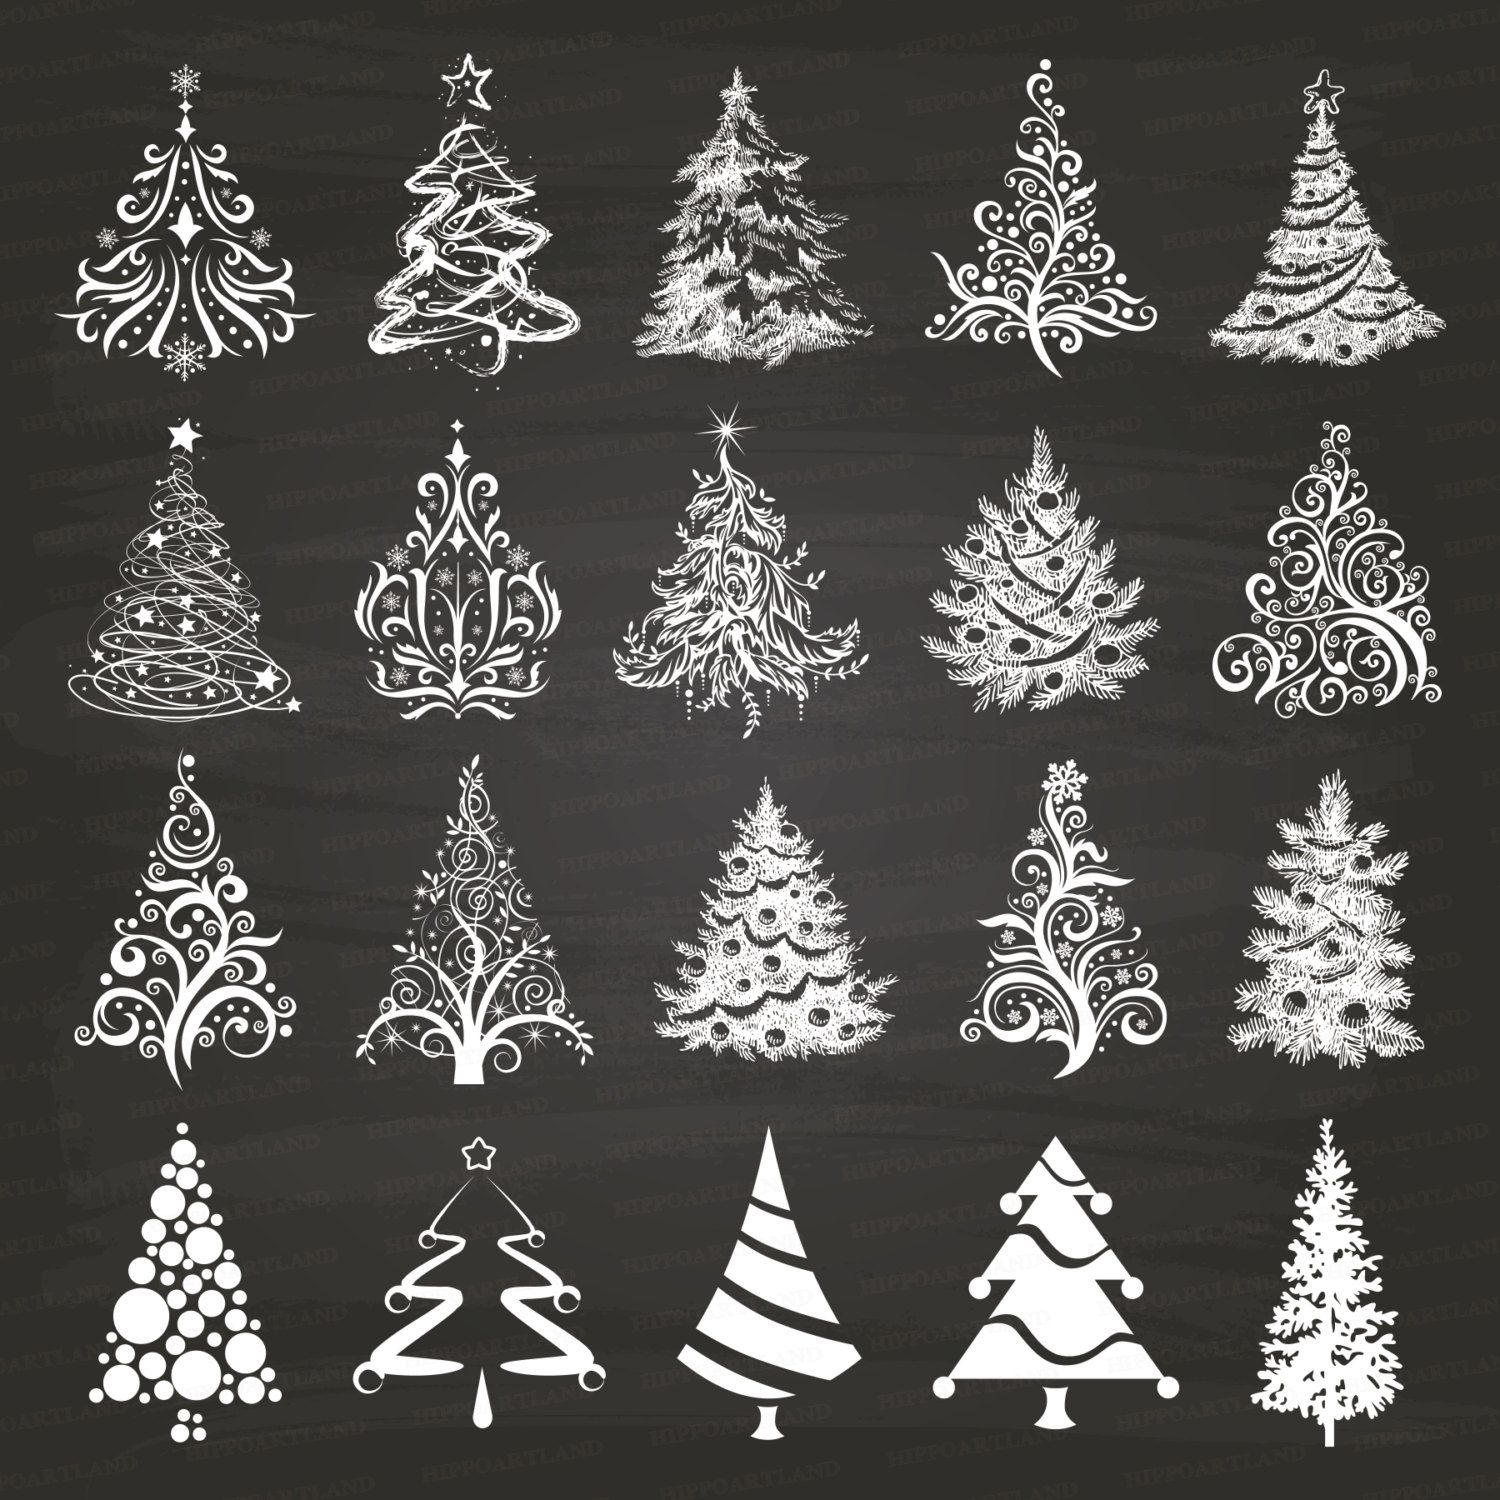 Digital Download Discoveries For Chalkboard Elements From Easypeach Com Christmas Chalkboard Art Christmas Chalkboard Christmas Tree Clipart